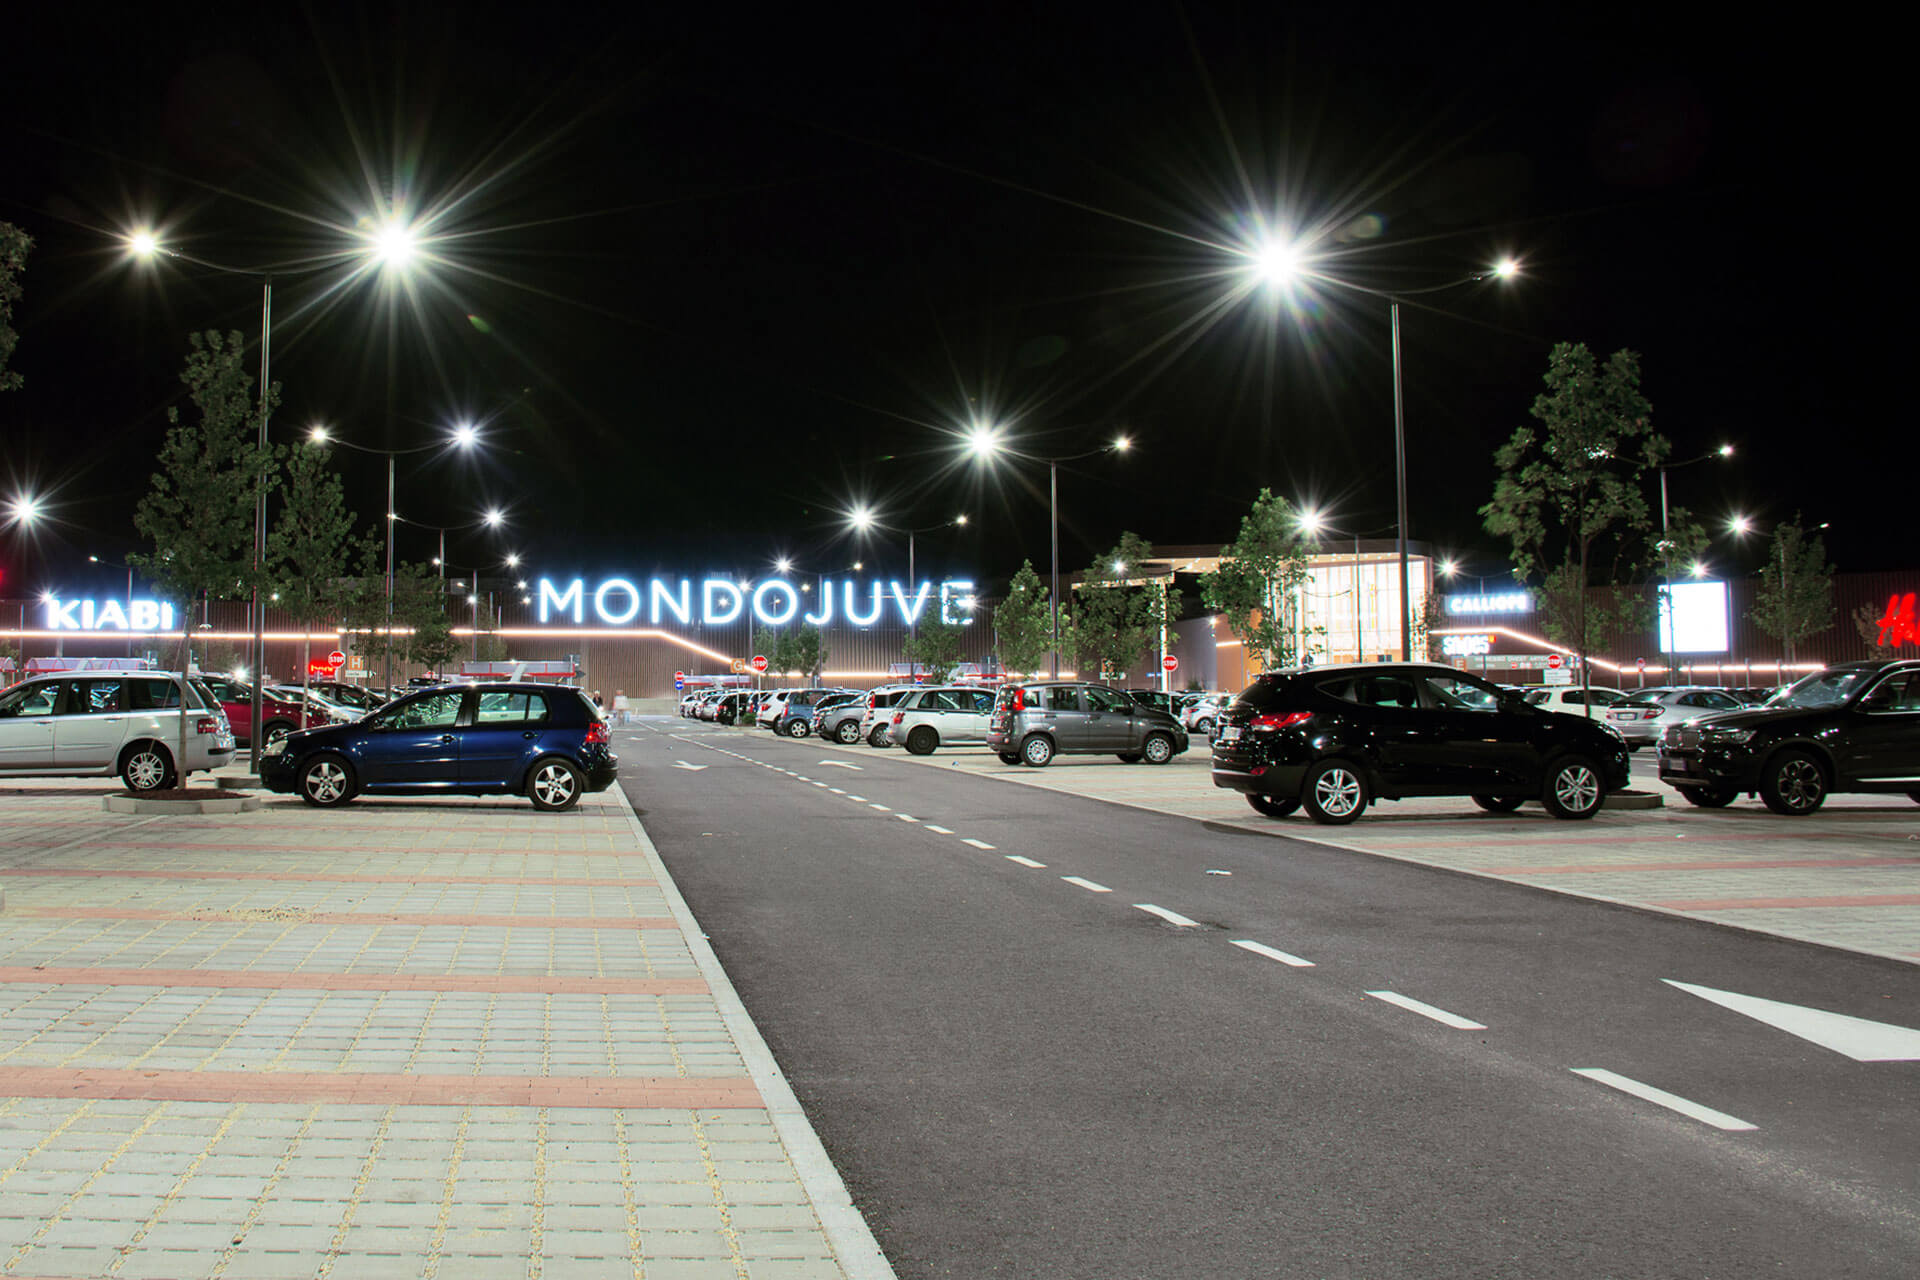 Axia 2 provides a sustainable lighting solution for Mondojuve shopping centre